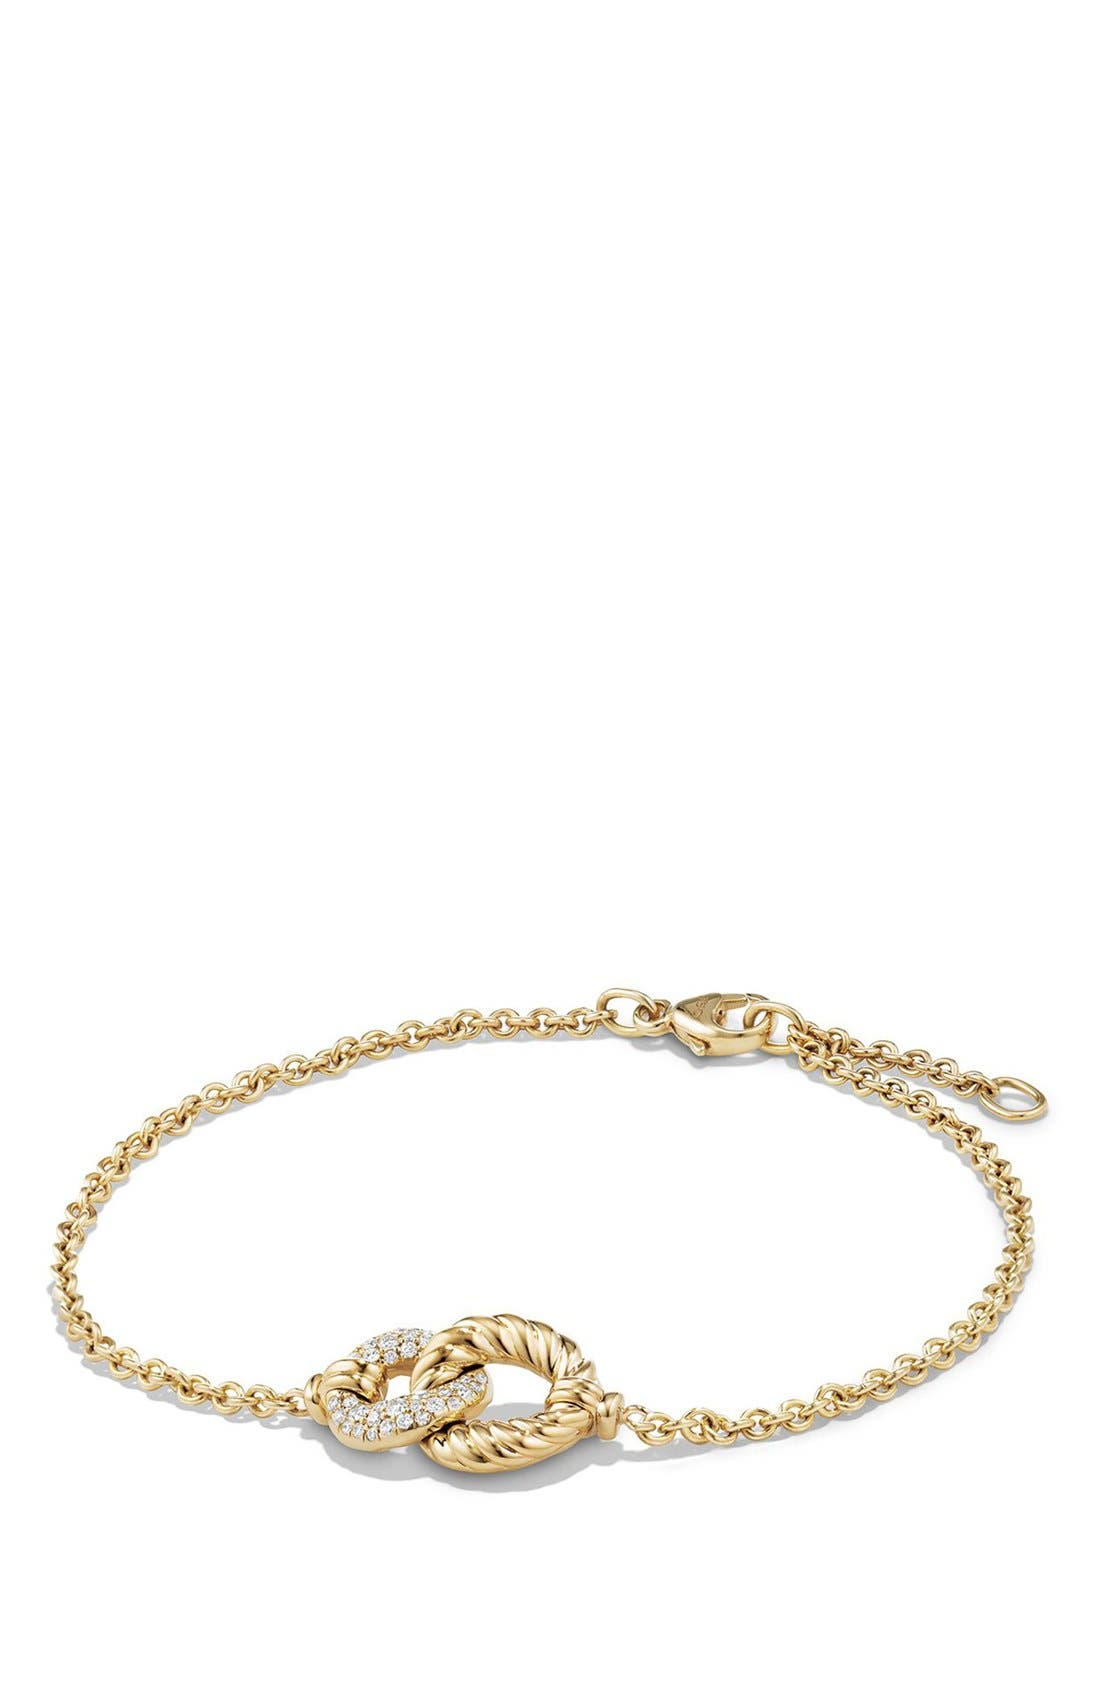 Belmont Single Station Bracelet,                             Main thumbnail 1, color,                             YELLOW GOLD/ DIAMOND